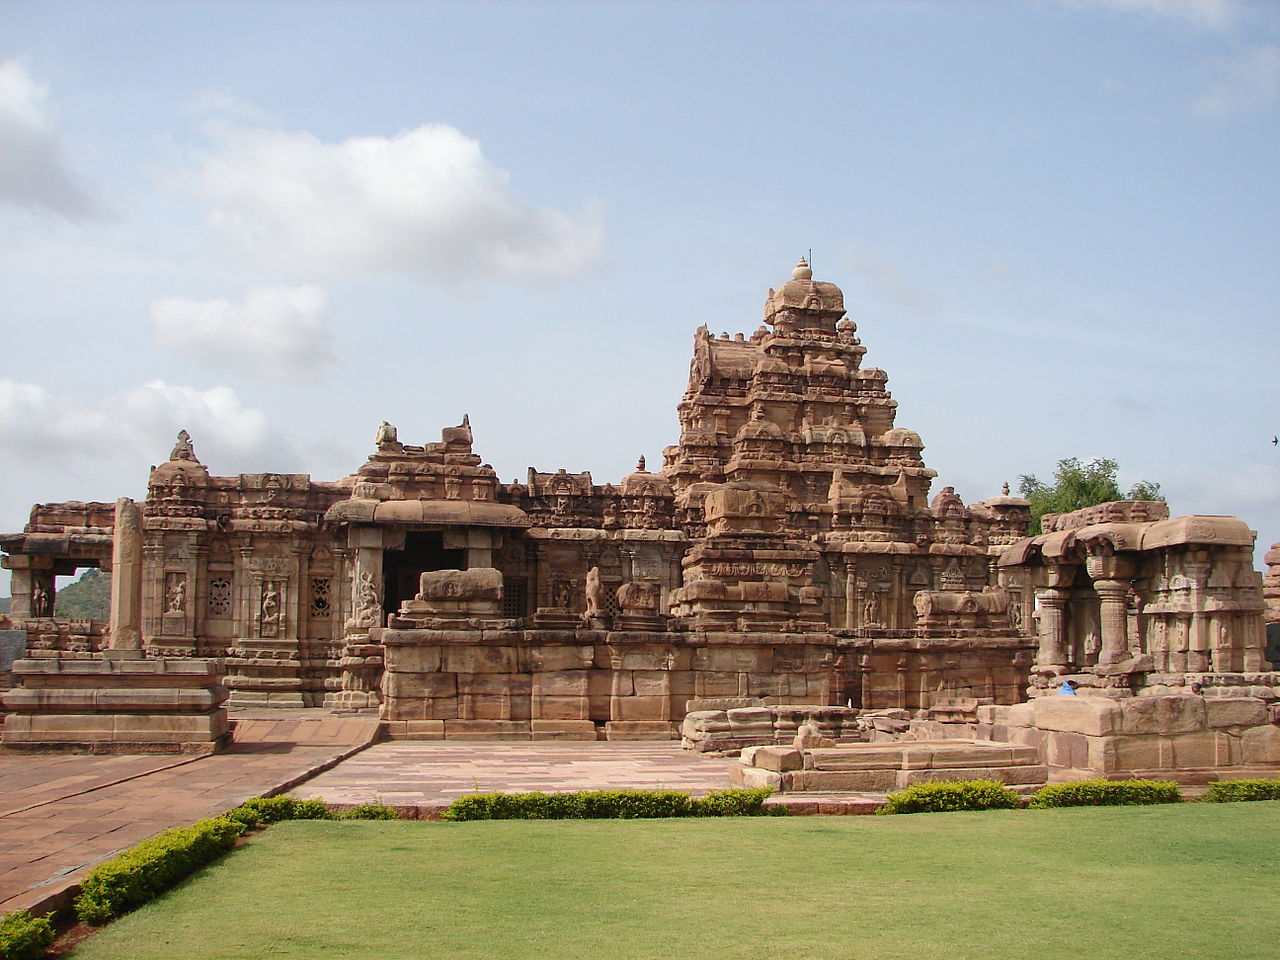 Virupaksha temple - Pattadakal